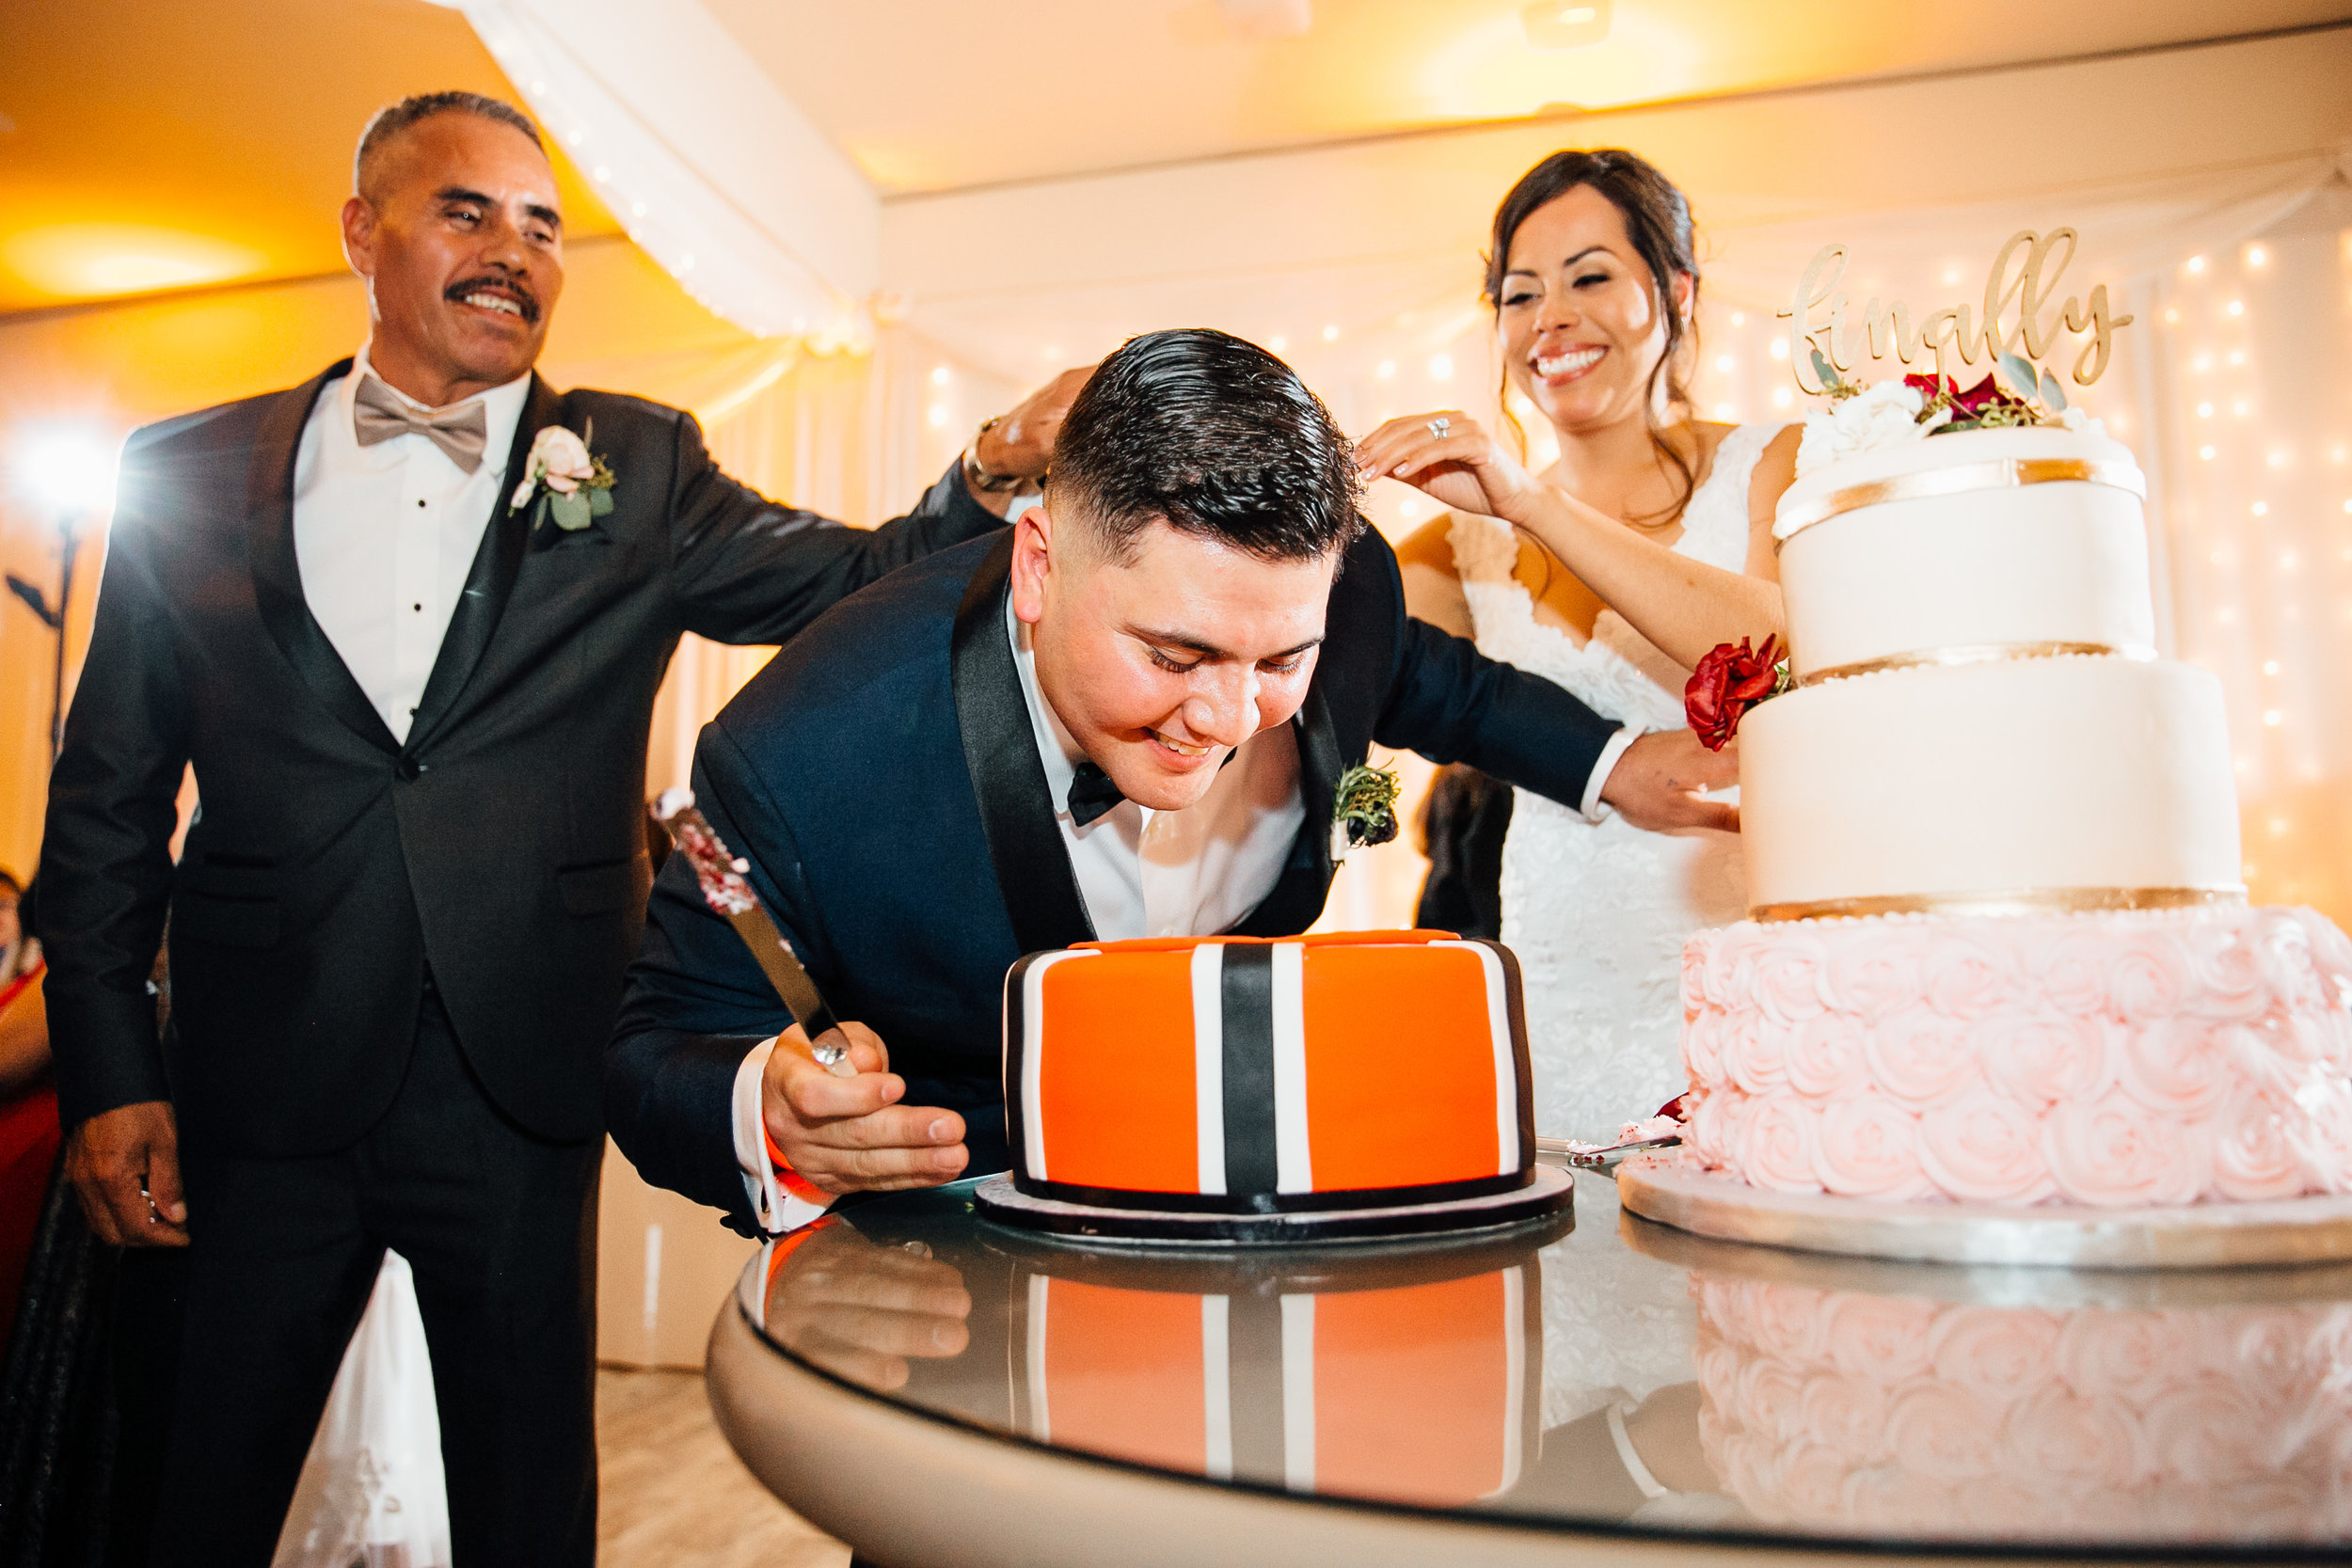 Mayra-Brandon-Wedding-Malibu_162.jpg